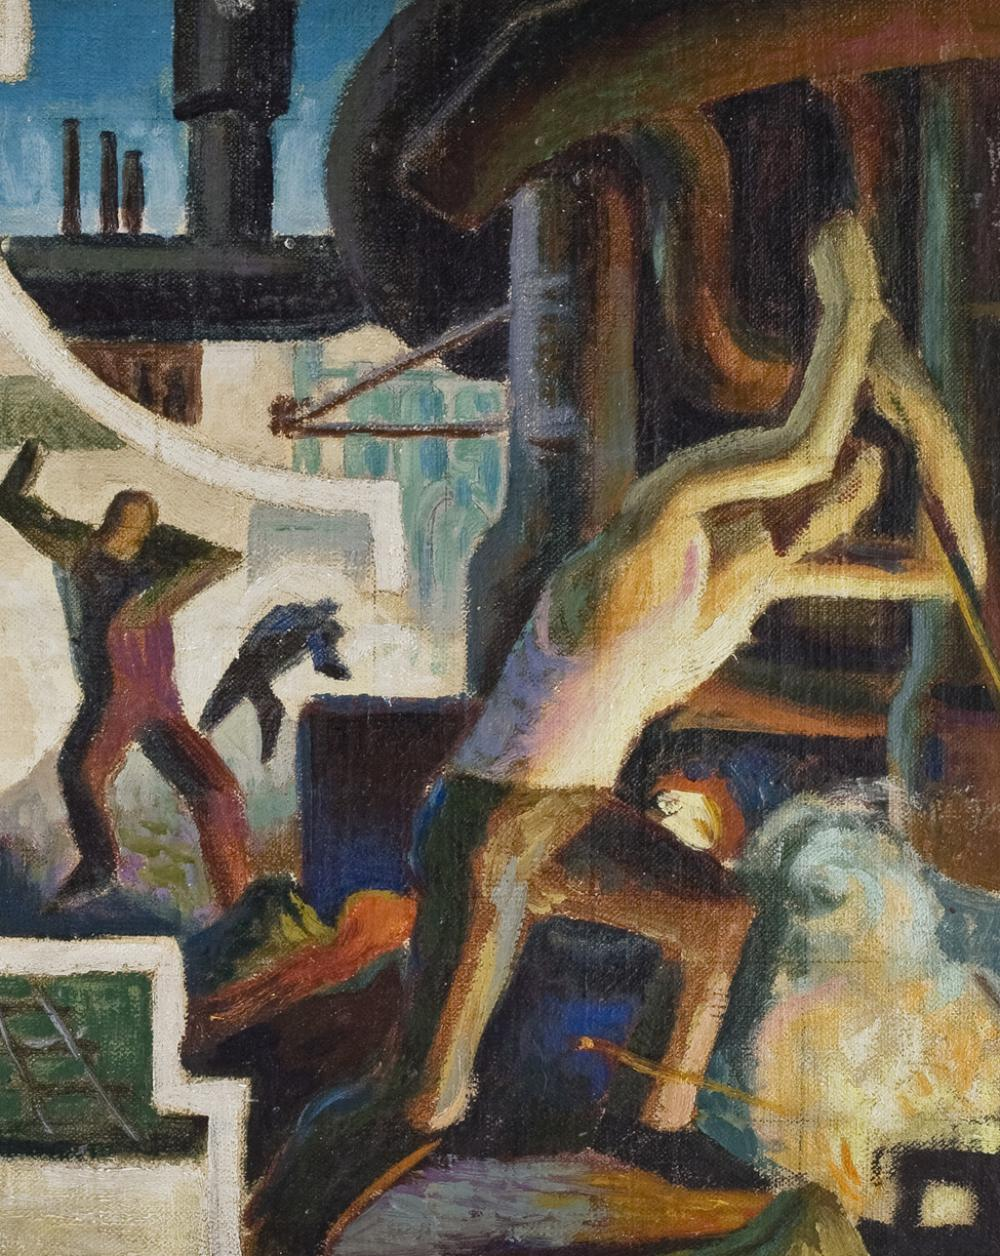 Thomas H. Benton (American, 1889-1975), Study for Steel from America Today, 1930